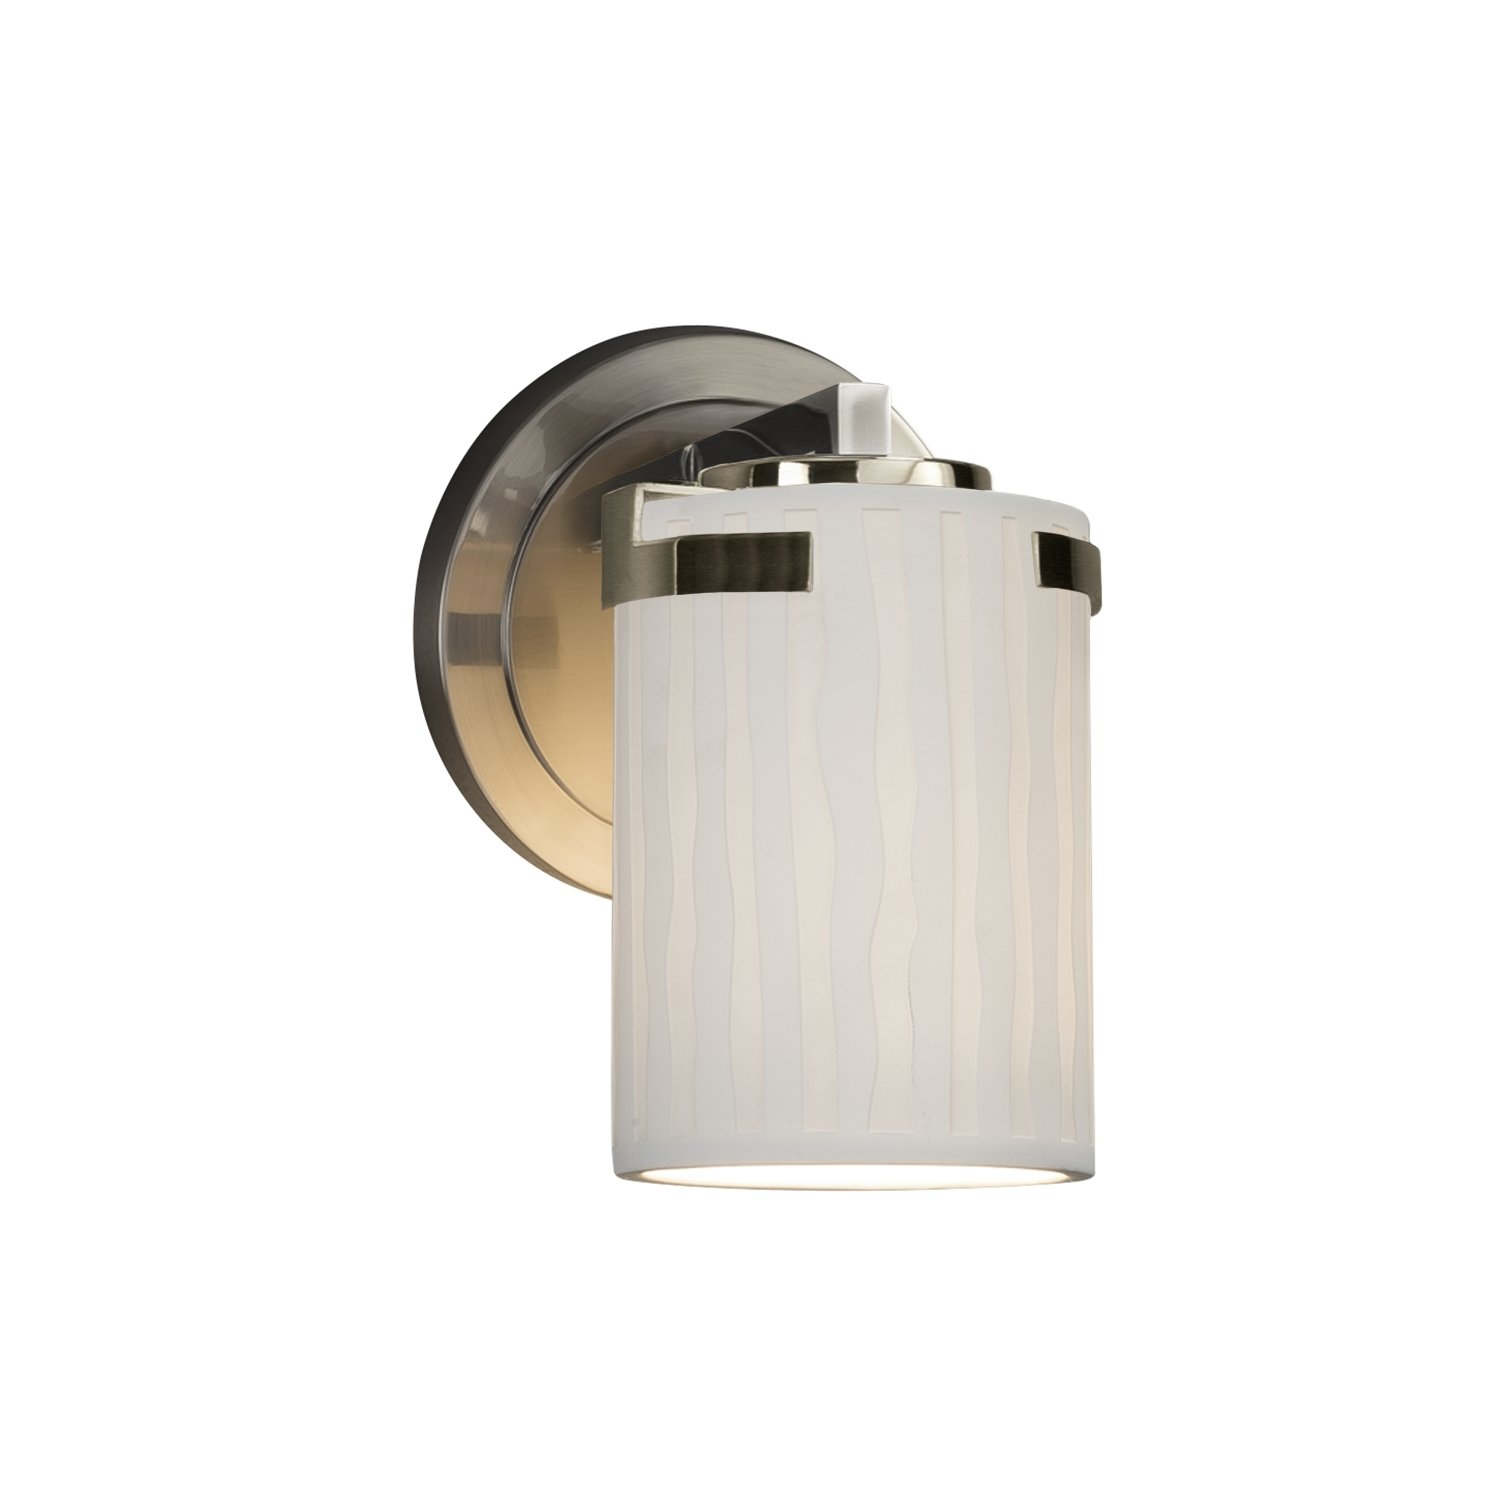 Limoges - Atlas 1-Light Wall Sconce - Cylinder with Flat Rim Translucent Porcelain Shade with Waterfall Design - Brushed Nickel Finish